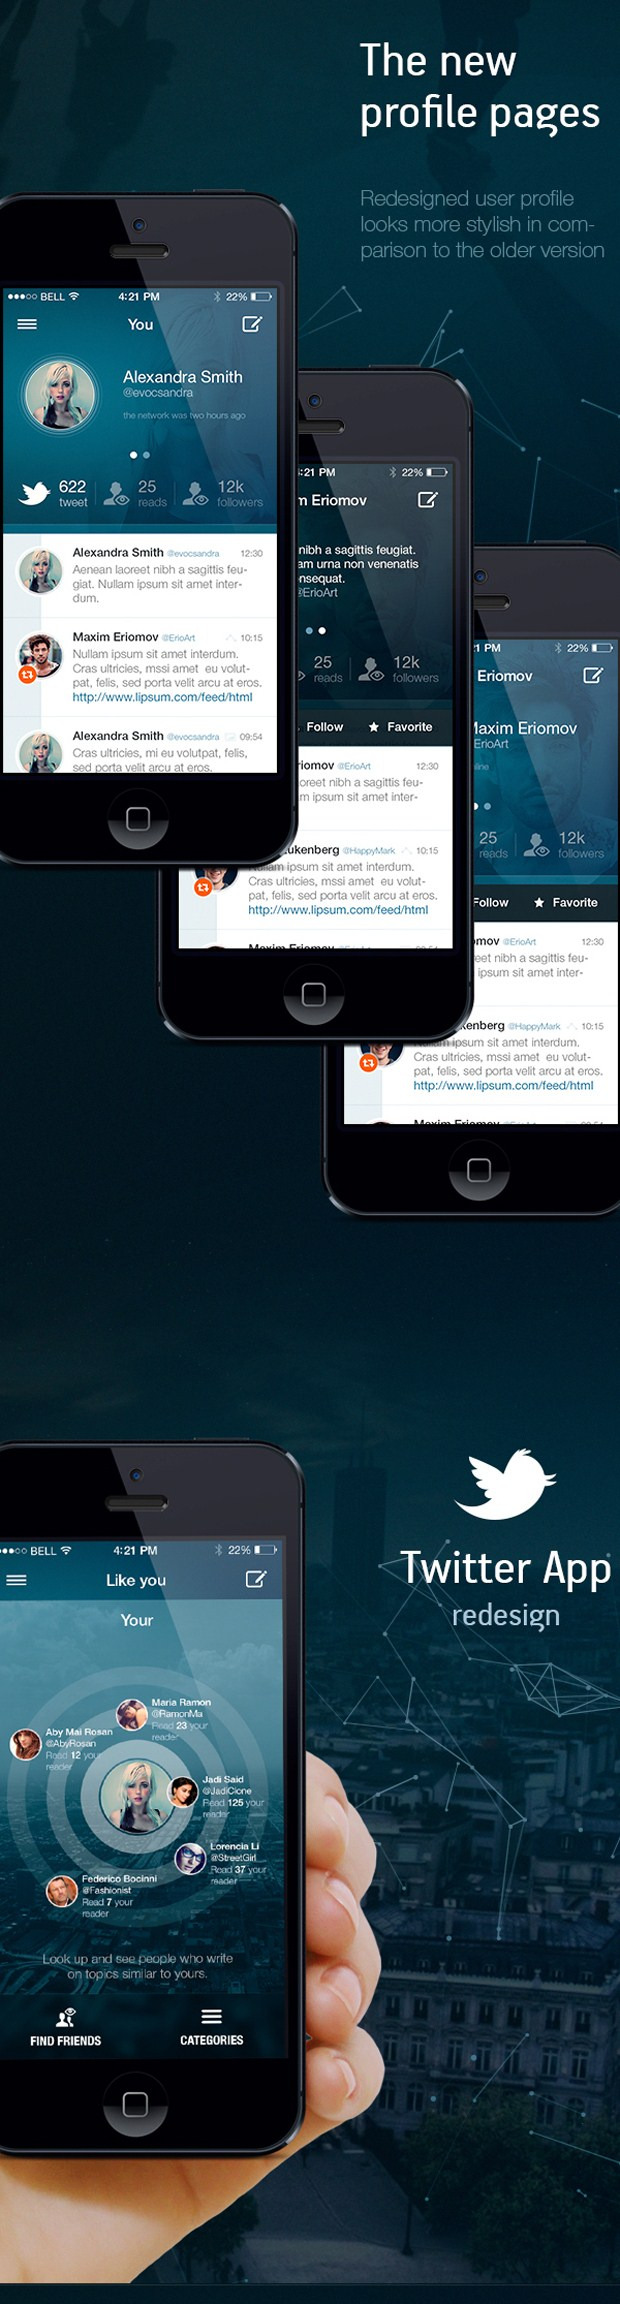 10-Twitter-Redesign-Concept-for-iOS 7